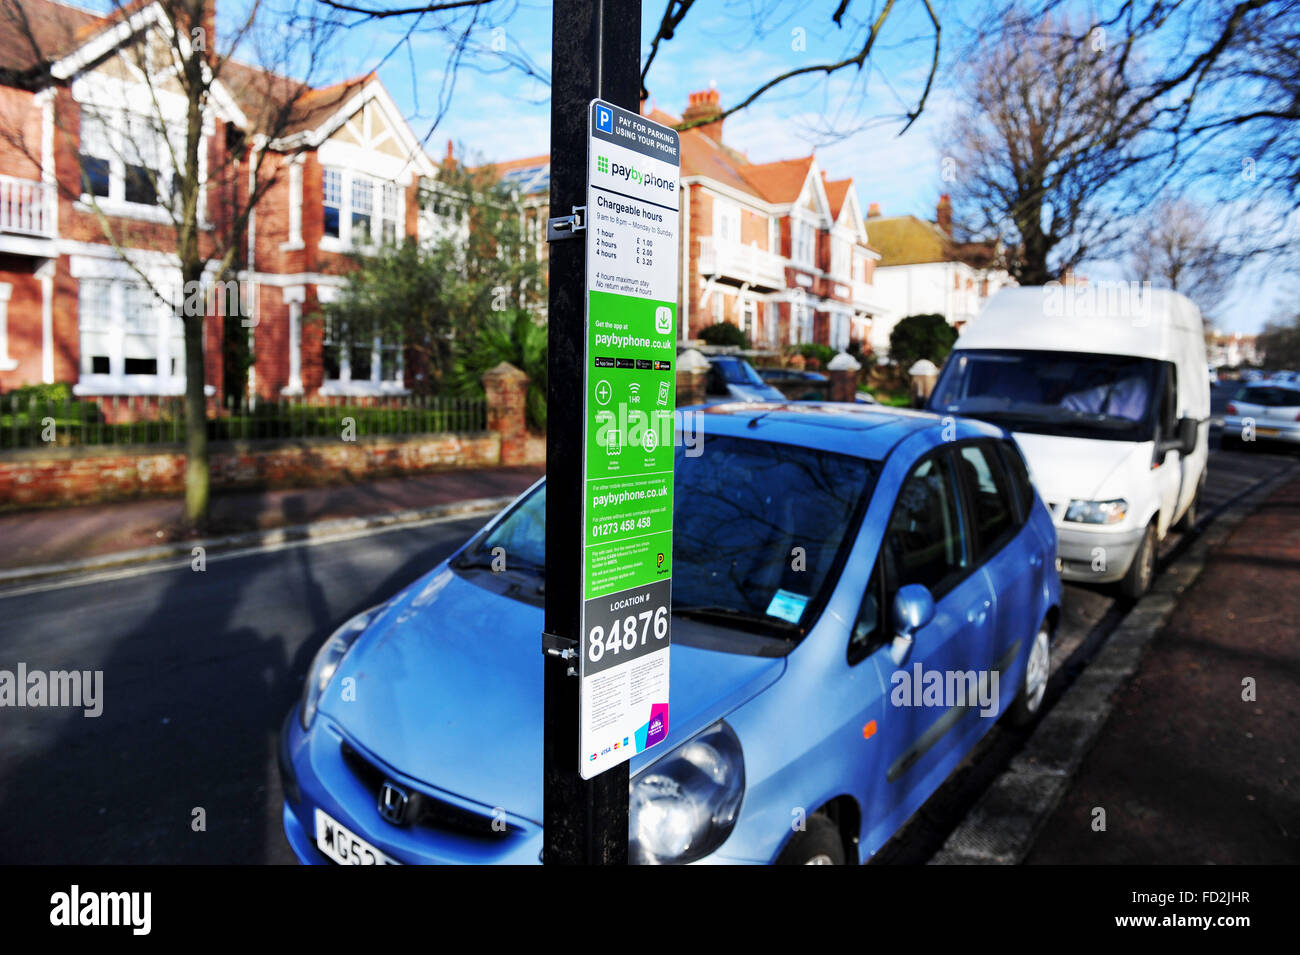 New PaybyPhone street car parking charges sign in Brighton and Hove UK - Stock Image